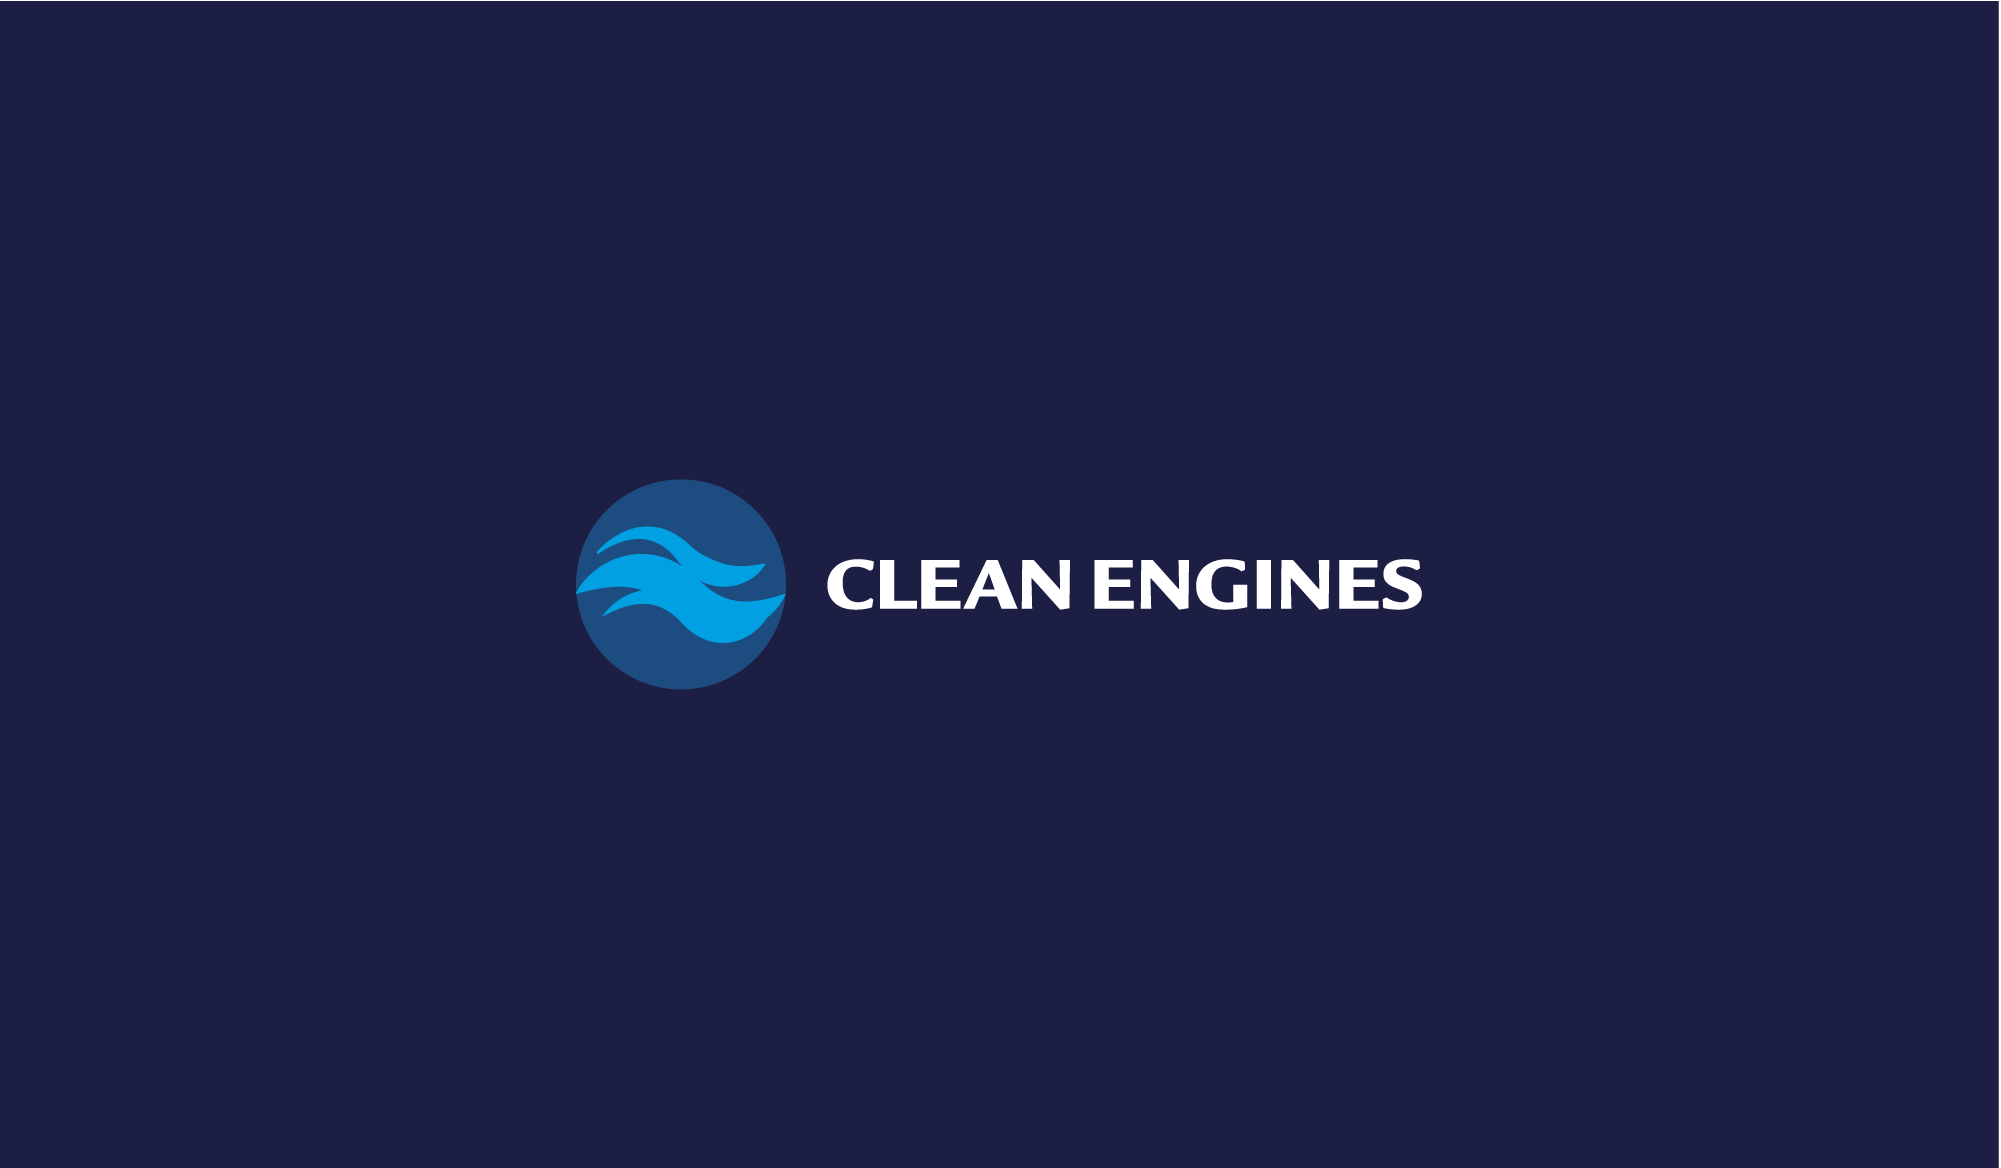 sb-logo-clean-engines-24